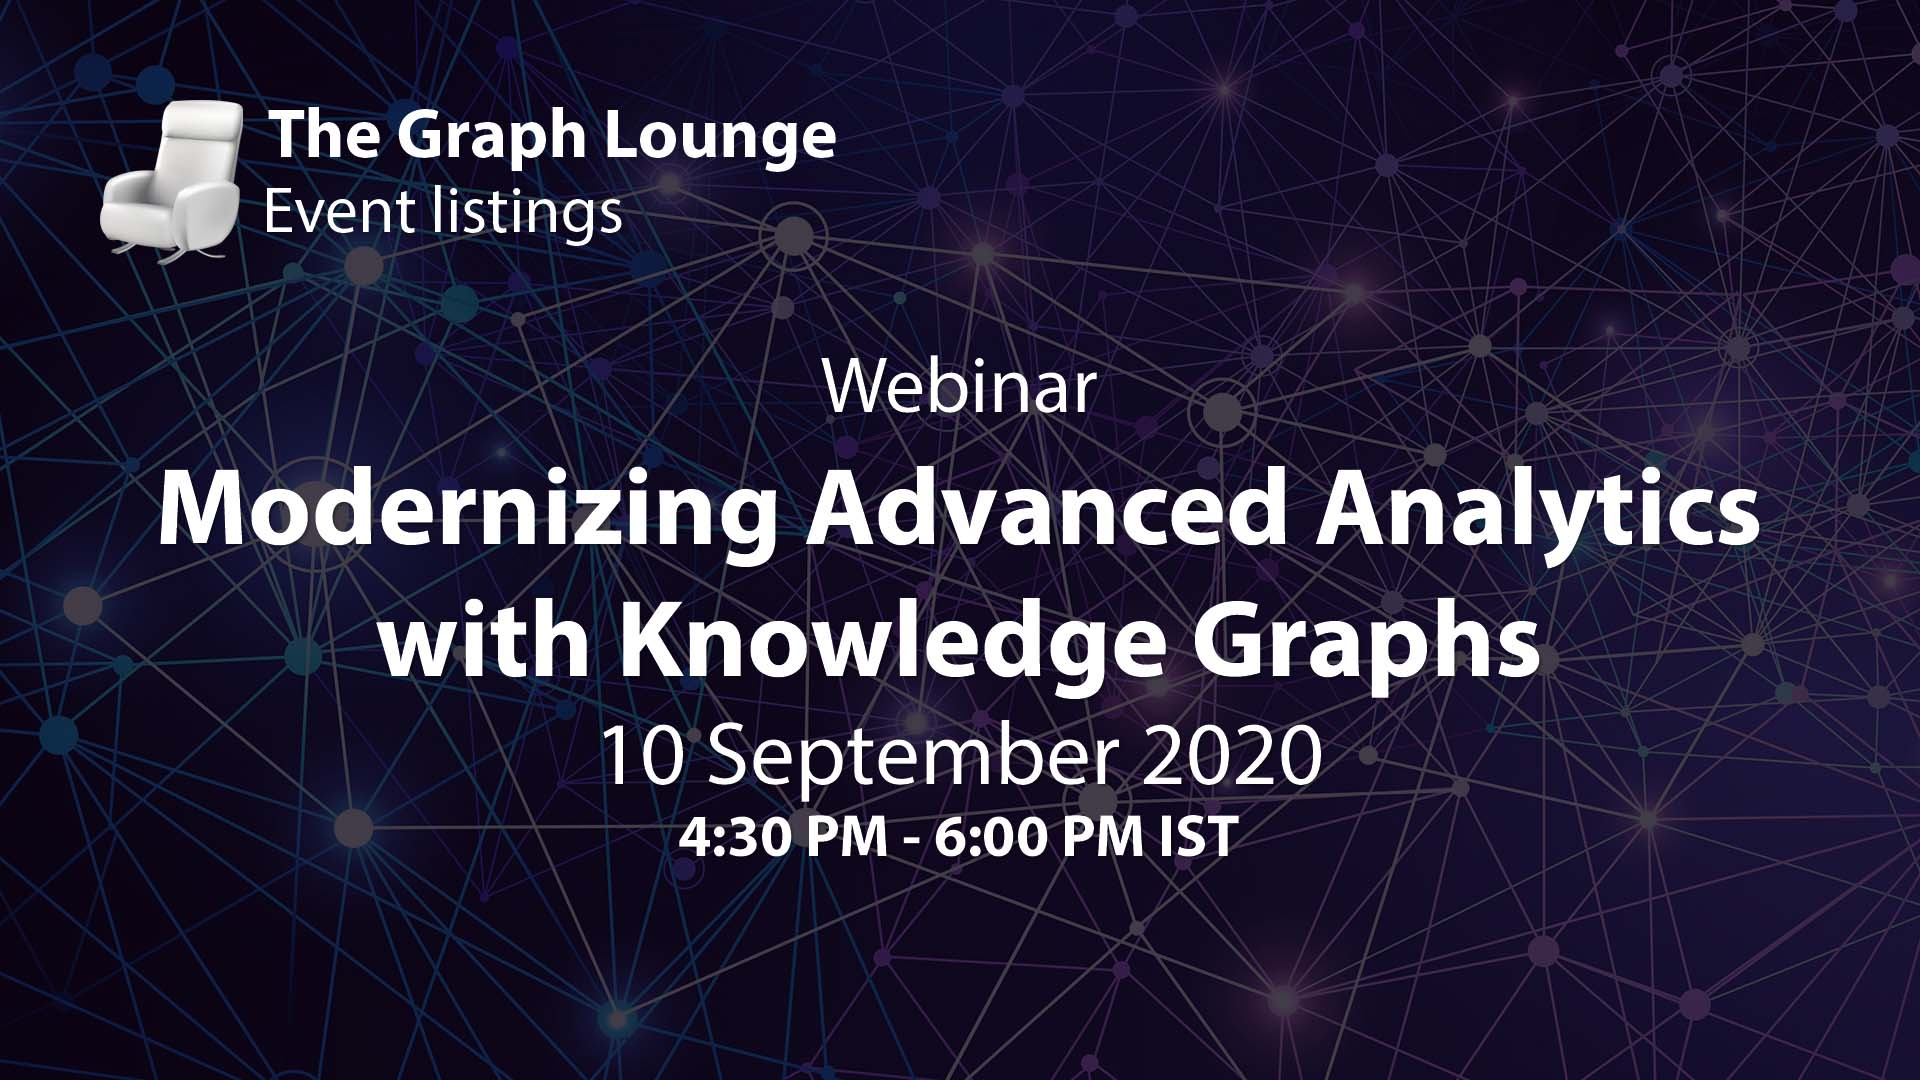 Modernizing Advanced Analytics With Knowledge Graphs